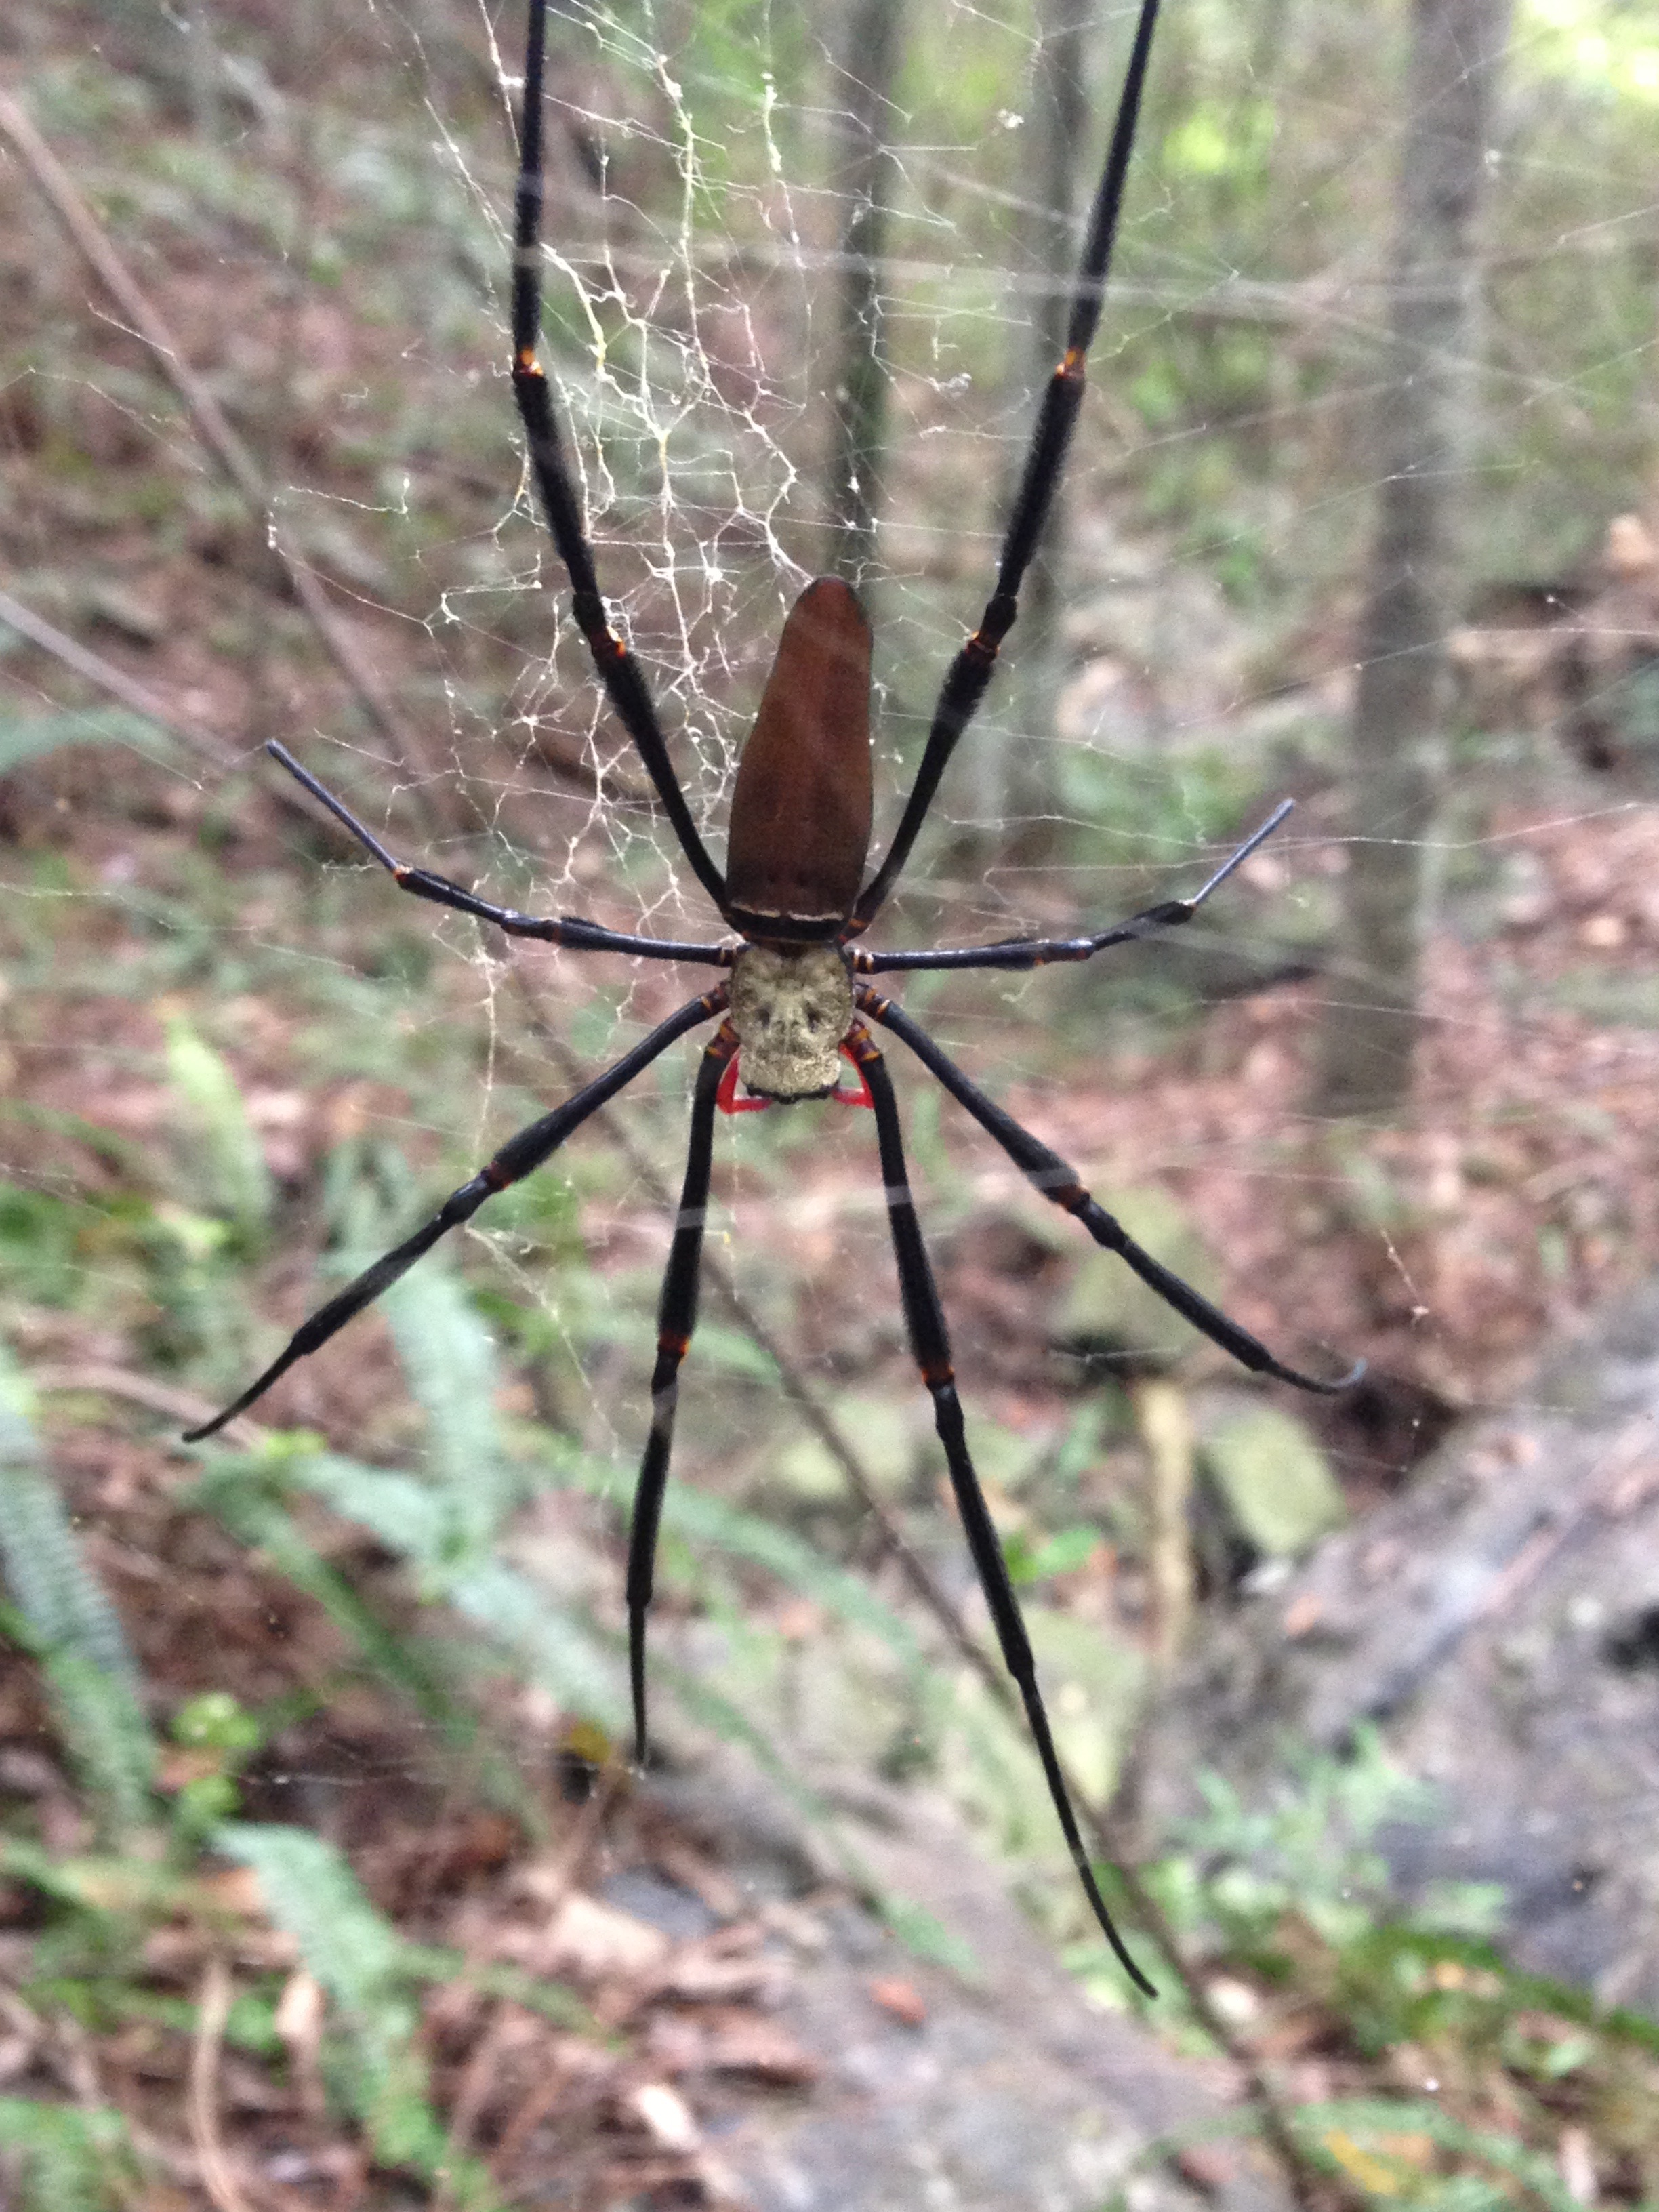 The mark of a field biologist - a couple of us explored a massive ravine near our property last week. There were no trails, loads of thorny trees, and very thick undergrowth. At one point I lost my footing on a slope and jumped across a dry creekbed to a flatter patch and nearly put my face right through this lady's web (females are the big ones, males are pretty tiny). When my techs jumped down right behind me we all had the same reaction - a giant bout of guttural laughter at the proposition of running straight into this thing. We had escaped an uncomfortable moment and the only thing to do was to laugh at the possibility of one of us tearing off through the underbrush or tumbling down a hill when we saw one of these poke its head over the brim of our hat.   They're not supposed to be very venomous by the way. If you google Golden Orb Weaver you'll find pictures of people holding them. We chose not to partake in that endeavor.